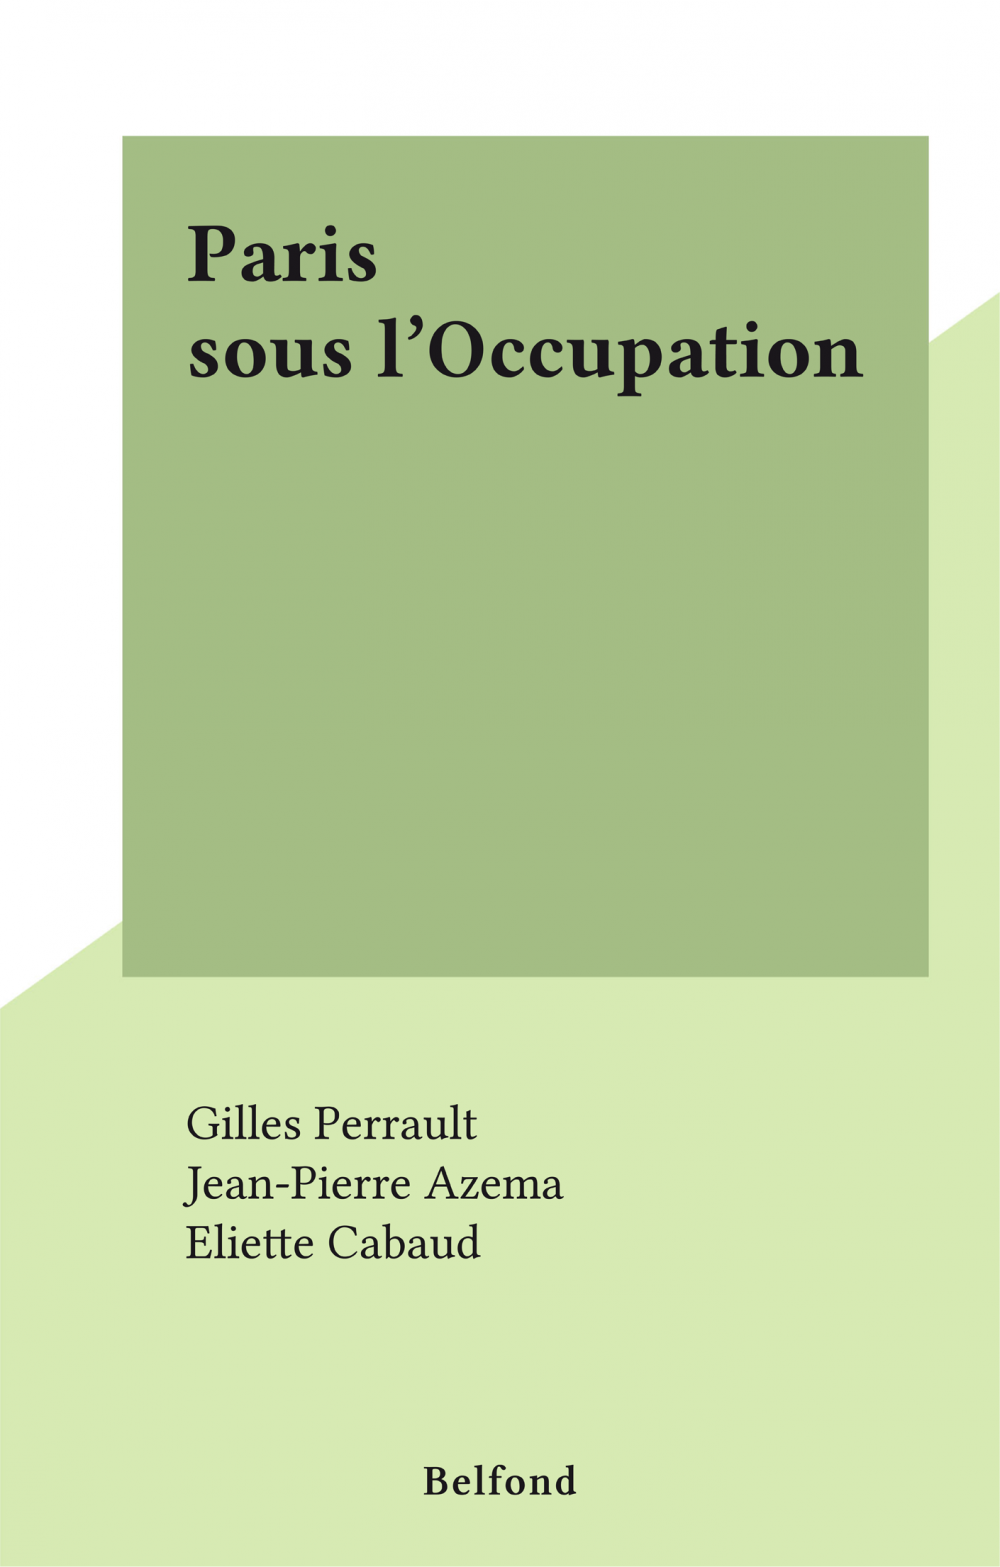 Paris sous l'Occupation